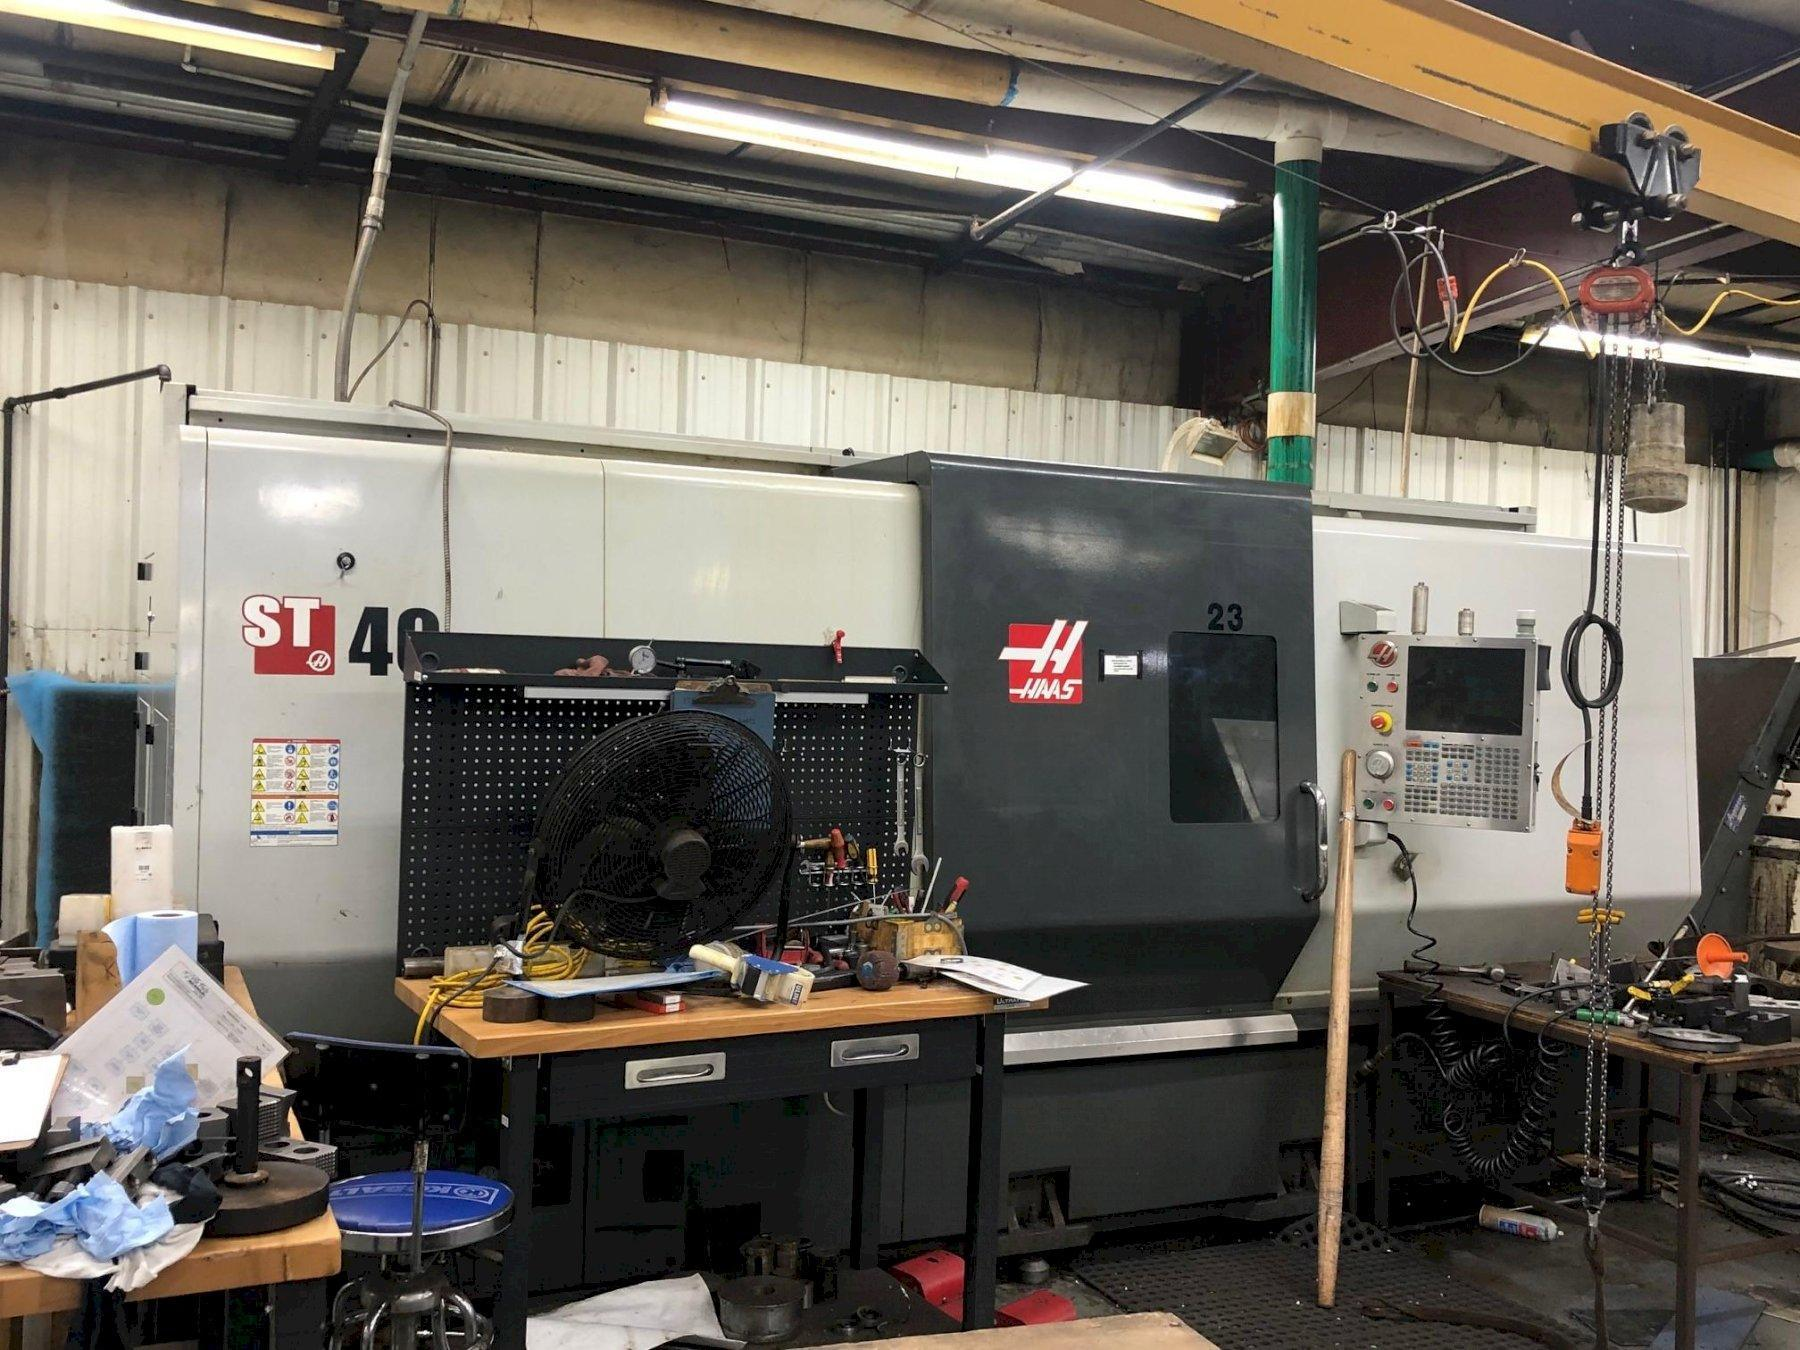 Haas ST-40 CNC Lathe, with 18' 3-Jaw Chuck, 12 Position Turret, Tailstock, Chip Conveyor, Haas Ctrl, Tooling Touch Probe, New 2012